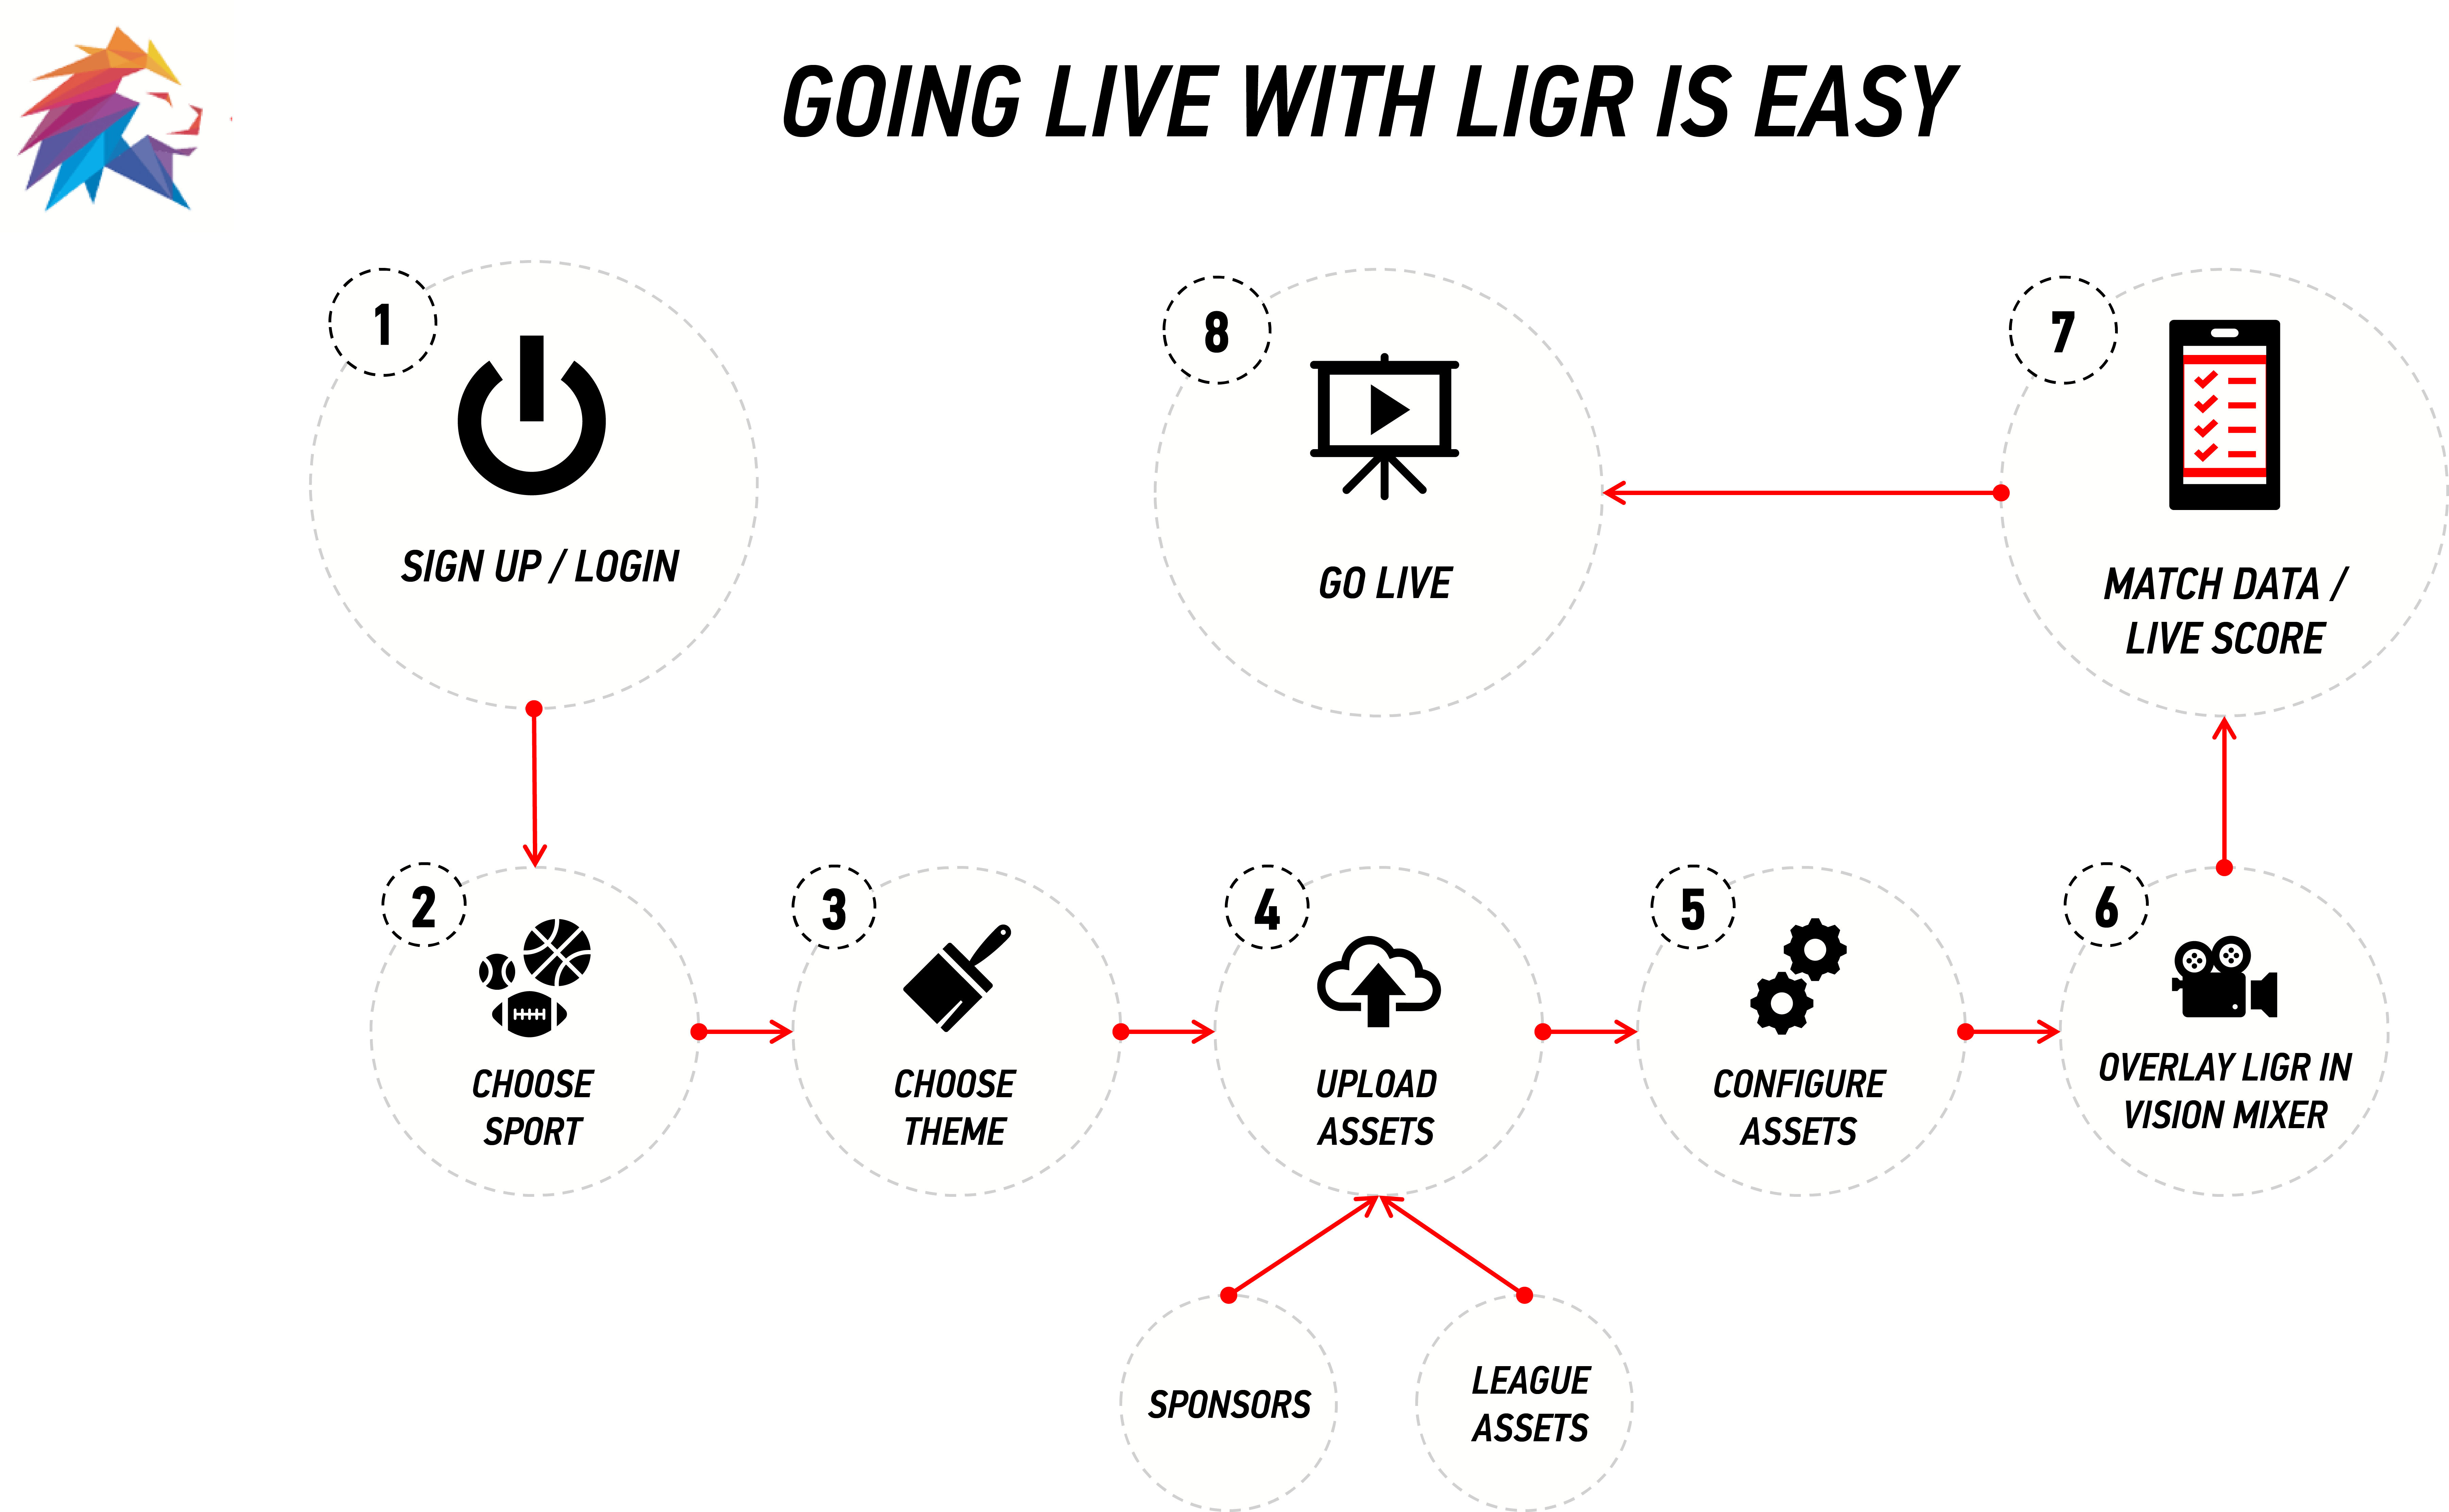 Go live with LIGR.Live in 6 Easy Steps.